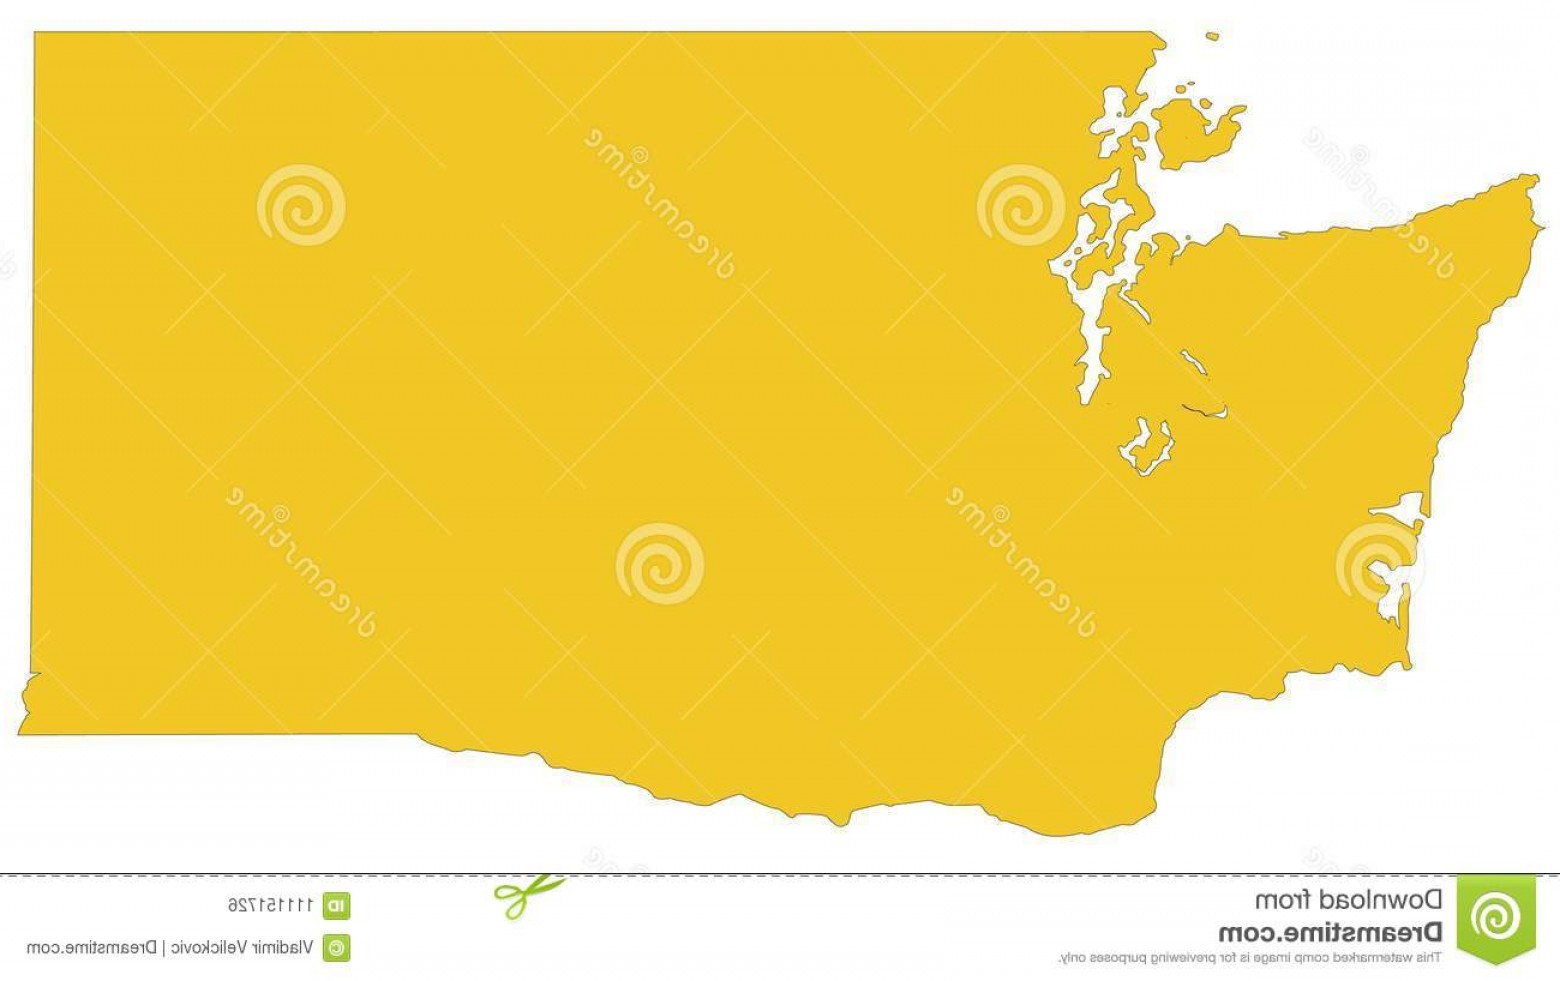 Washington State Map Vector: Washington State Map State Pacific Northwest Region United States Vector File Washington State Map State Image